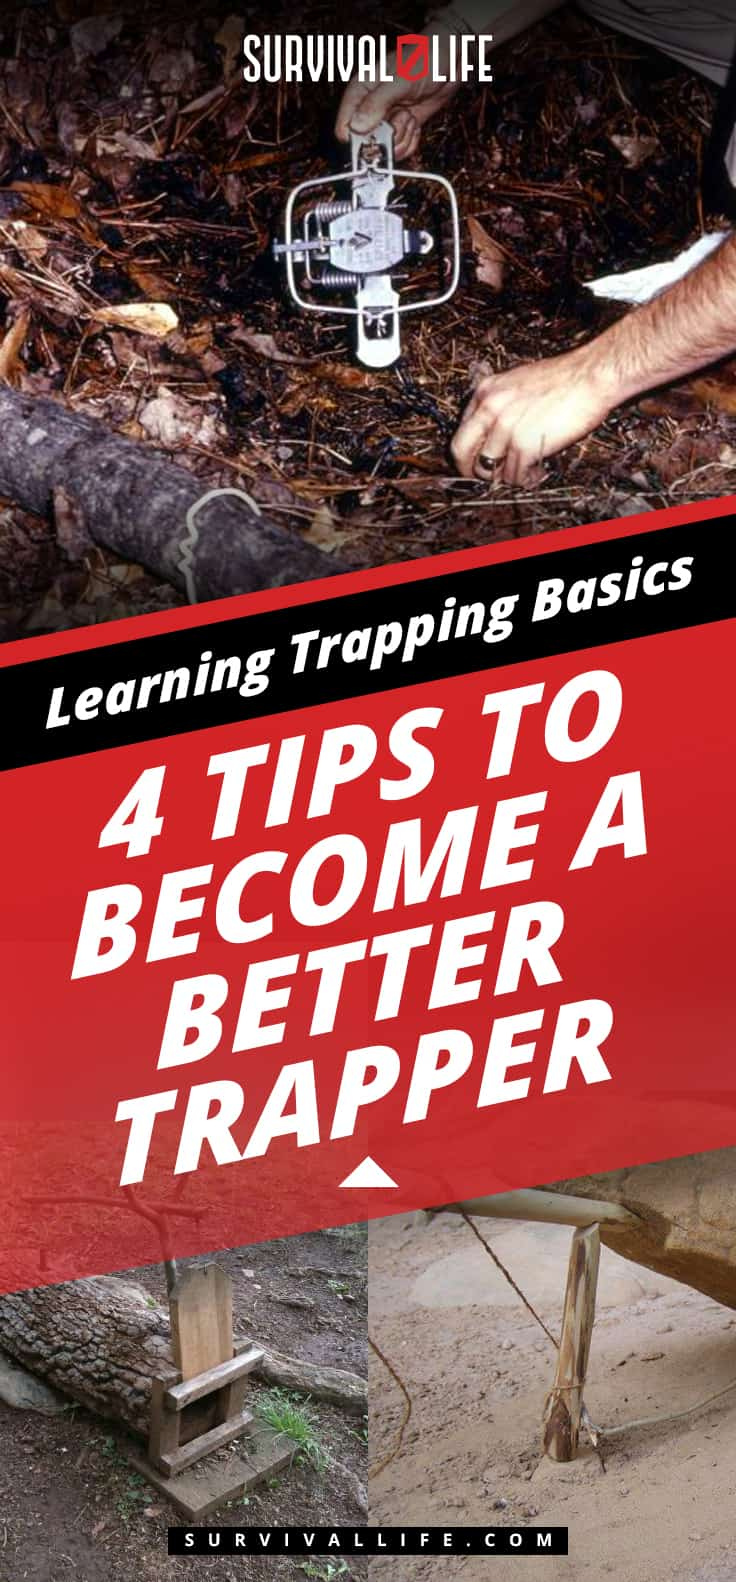 Placard | Tips To Become A Better Trapper | Learning Trapping Basics